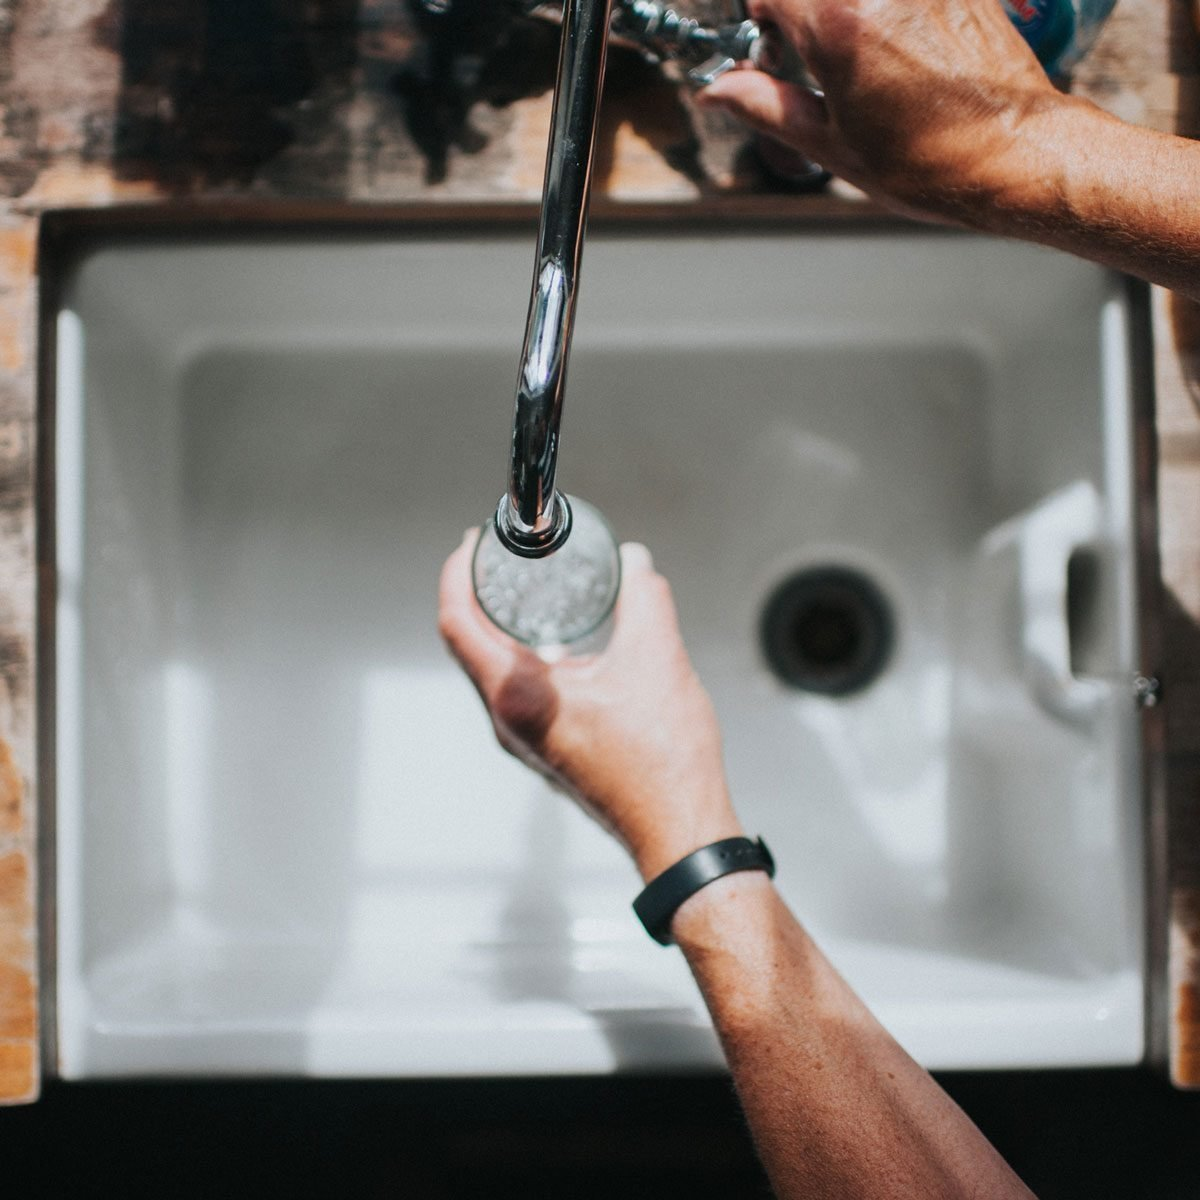 National Water Quality Month: Ways To Improve Your Home's Water